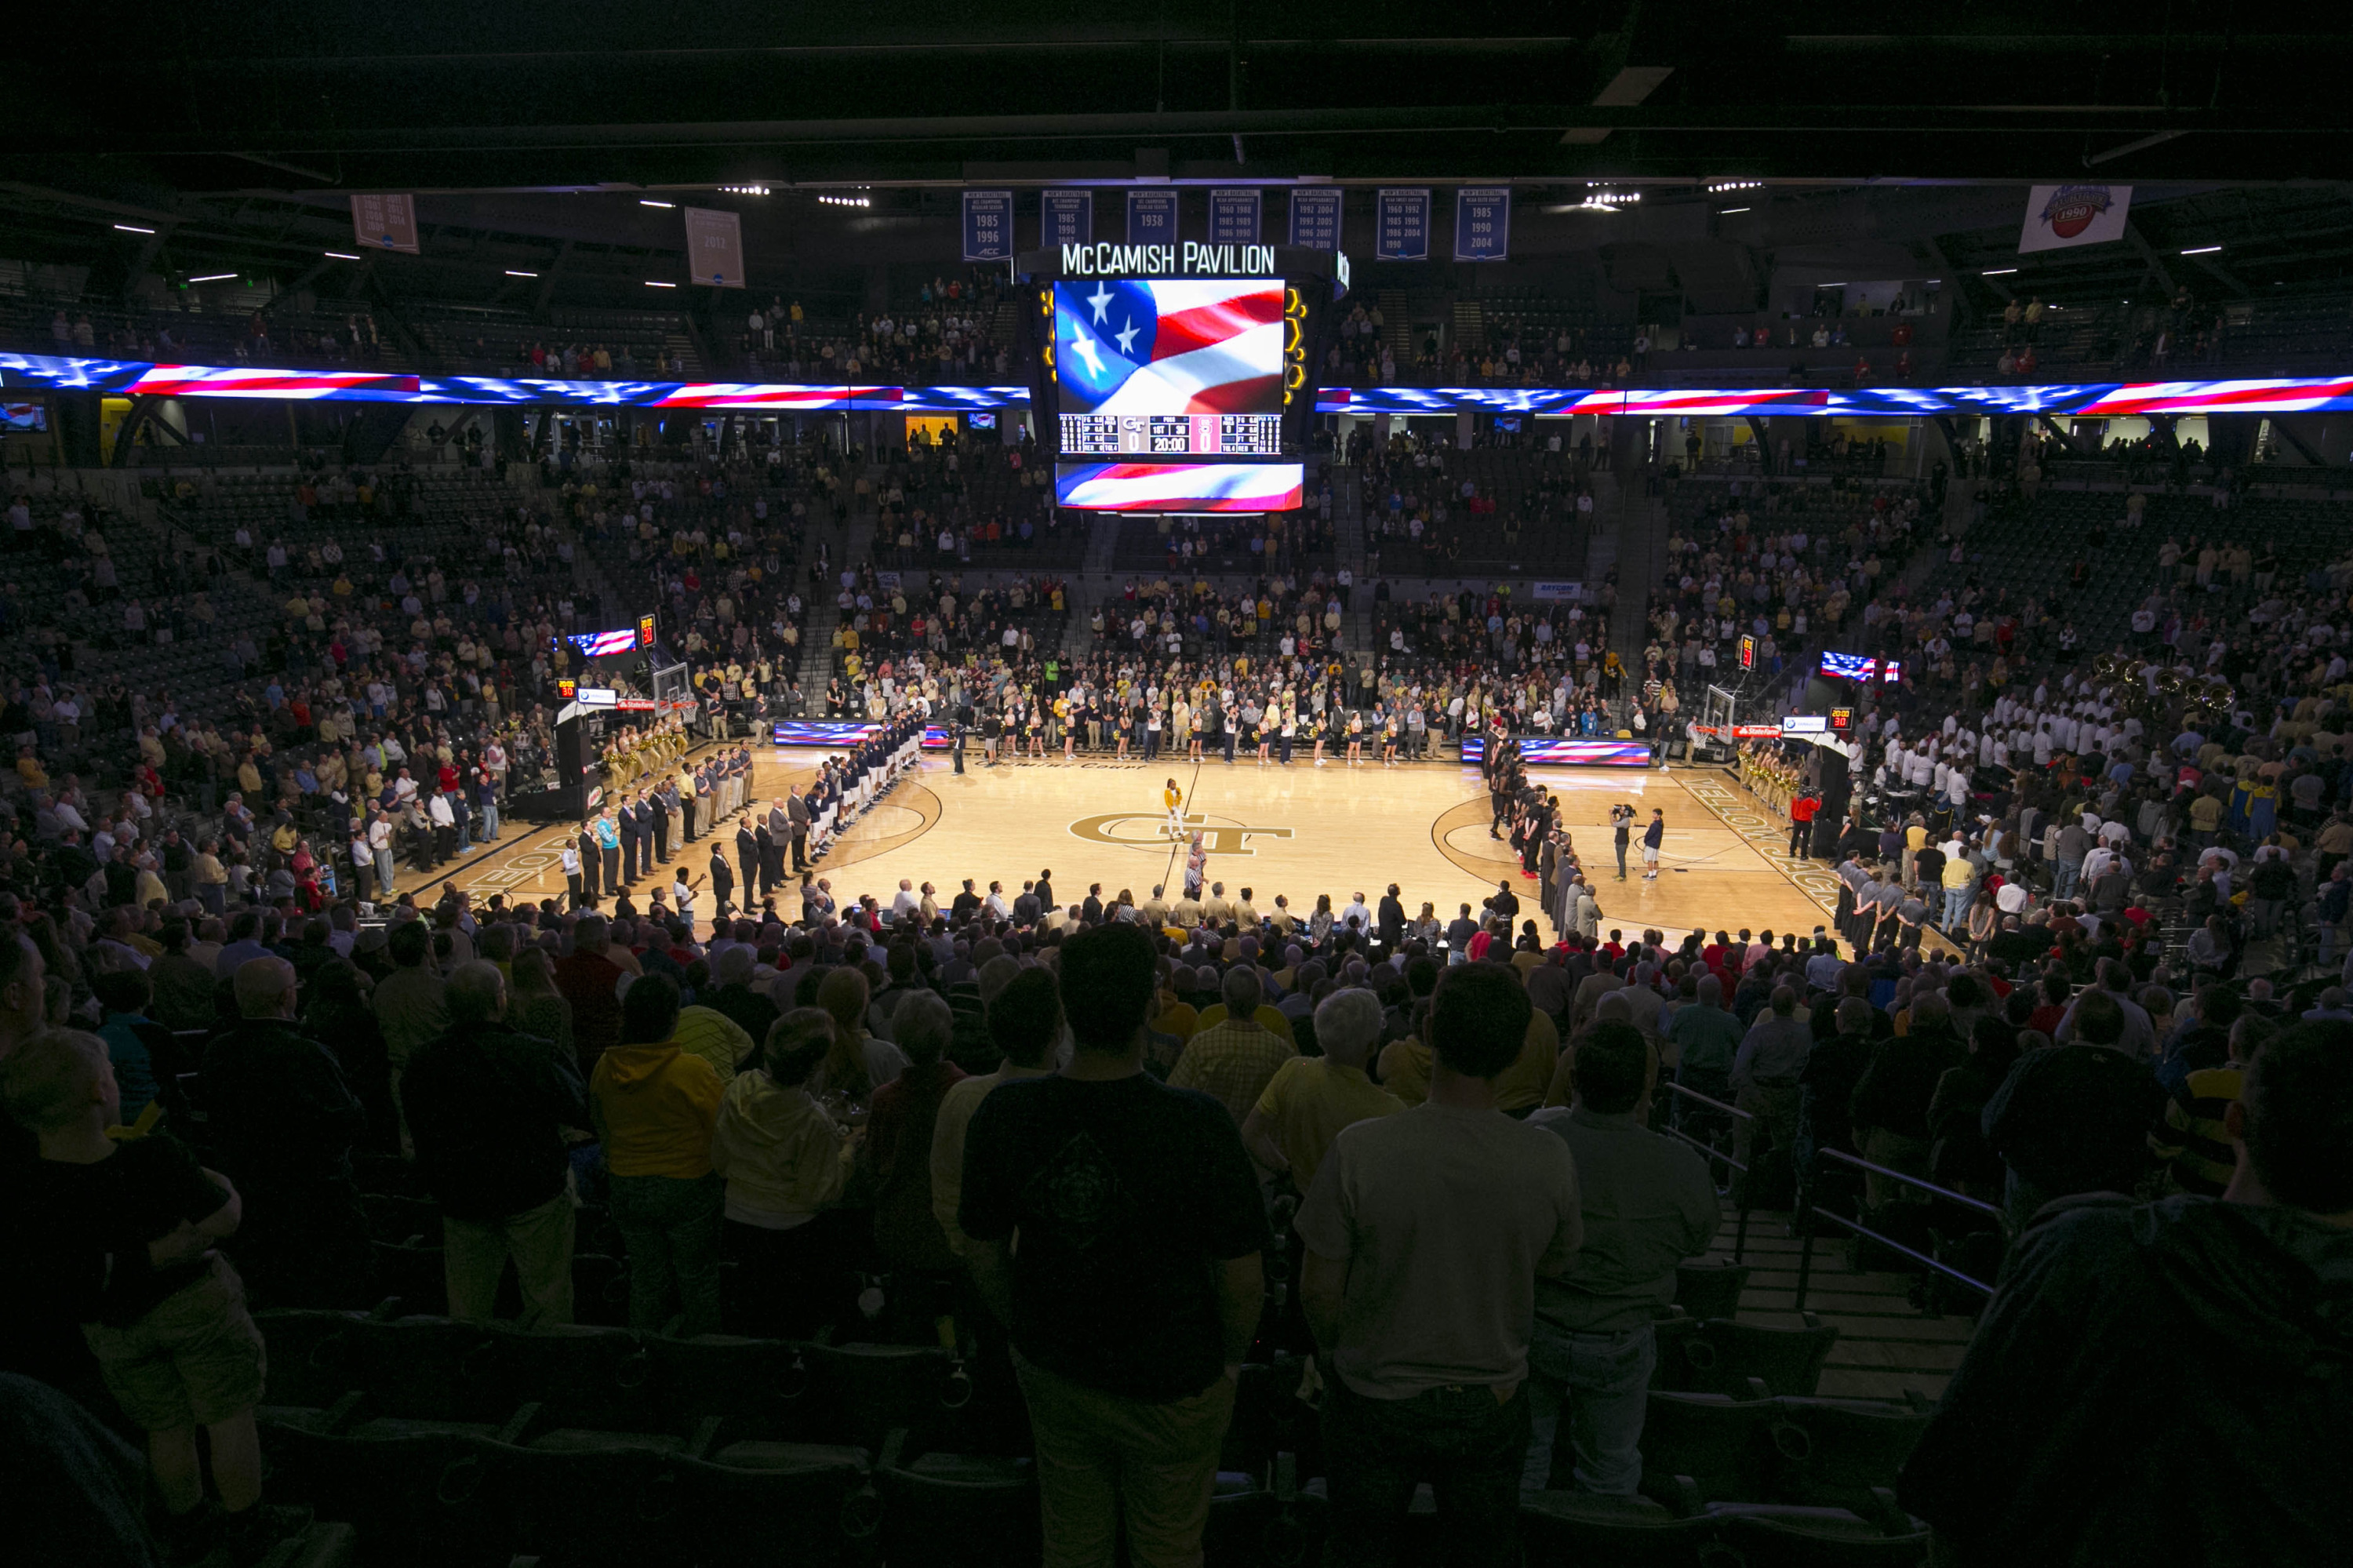 A general view of McCamish Pavilion during the national anthem prior to the game between the North Carolina State Wolfpack and the Georgia Tech Yellow Jackets. Credit: Jason Getz-USA TODAY Sports